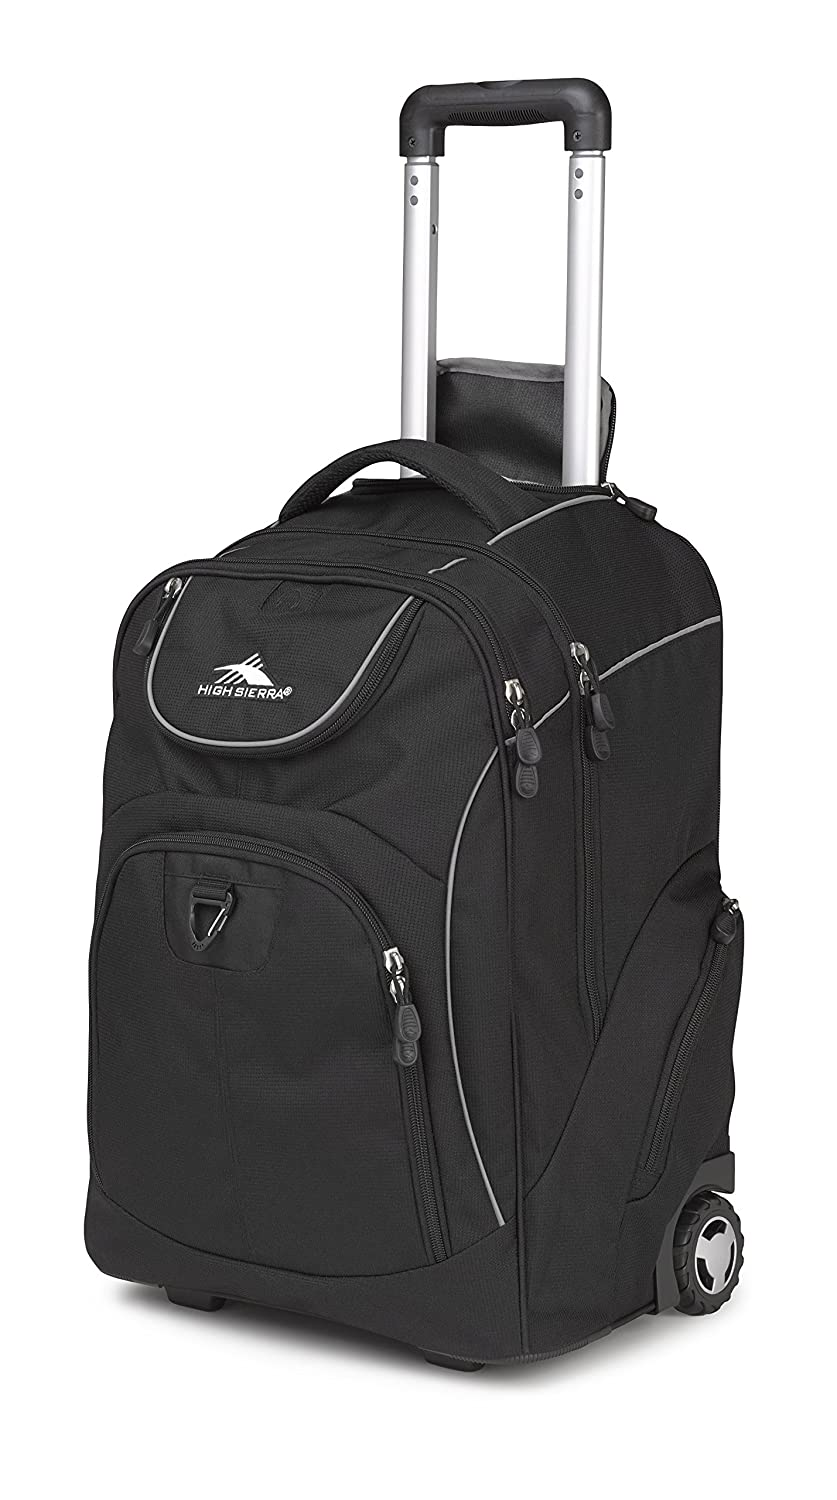 High Sierra Powerglide Wheeled Laptop Backpack, Great for High School, College Backpack, Rolling School Bag, Business Backpack, Travel Backpack, Carry-on Bag Perfect for Men and Women Black (Black Black) High Sierra Bags and Luggage 53992-1050